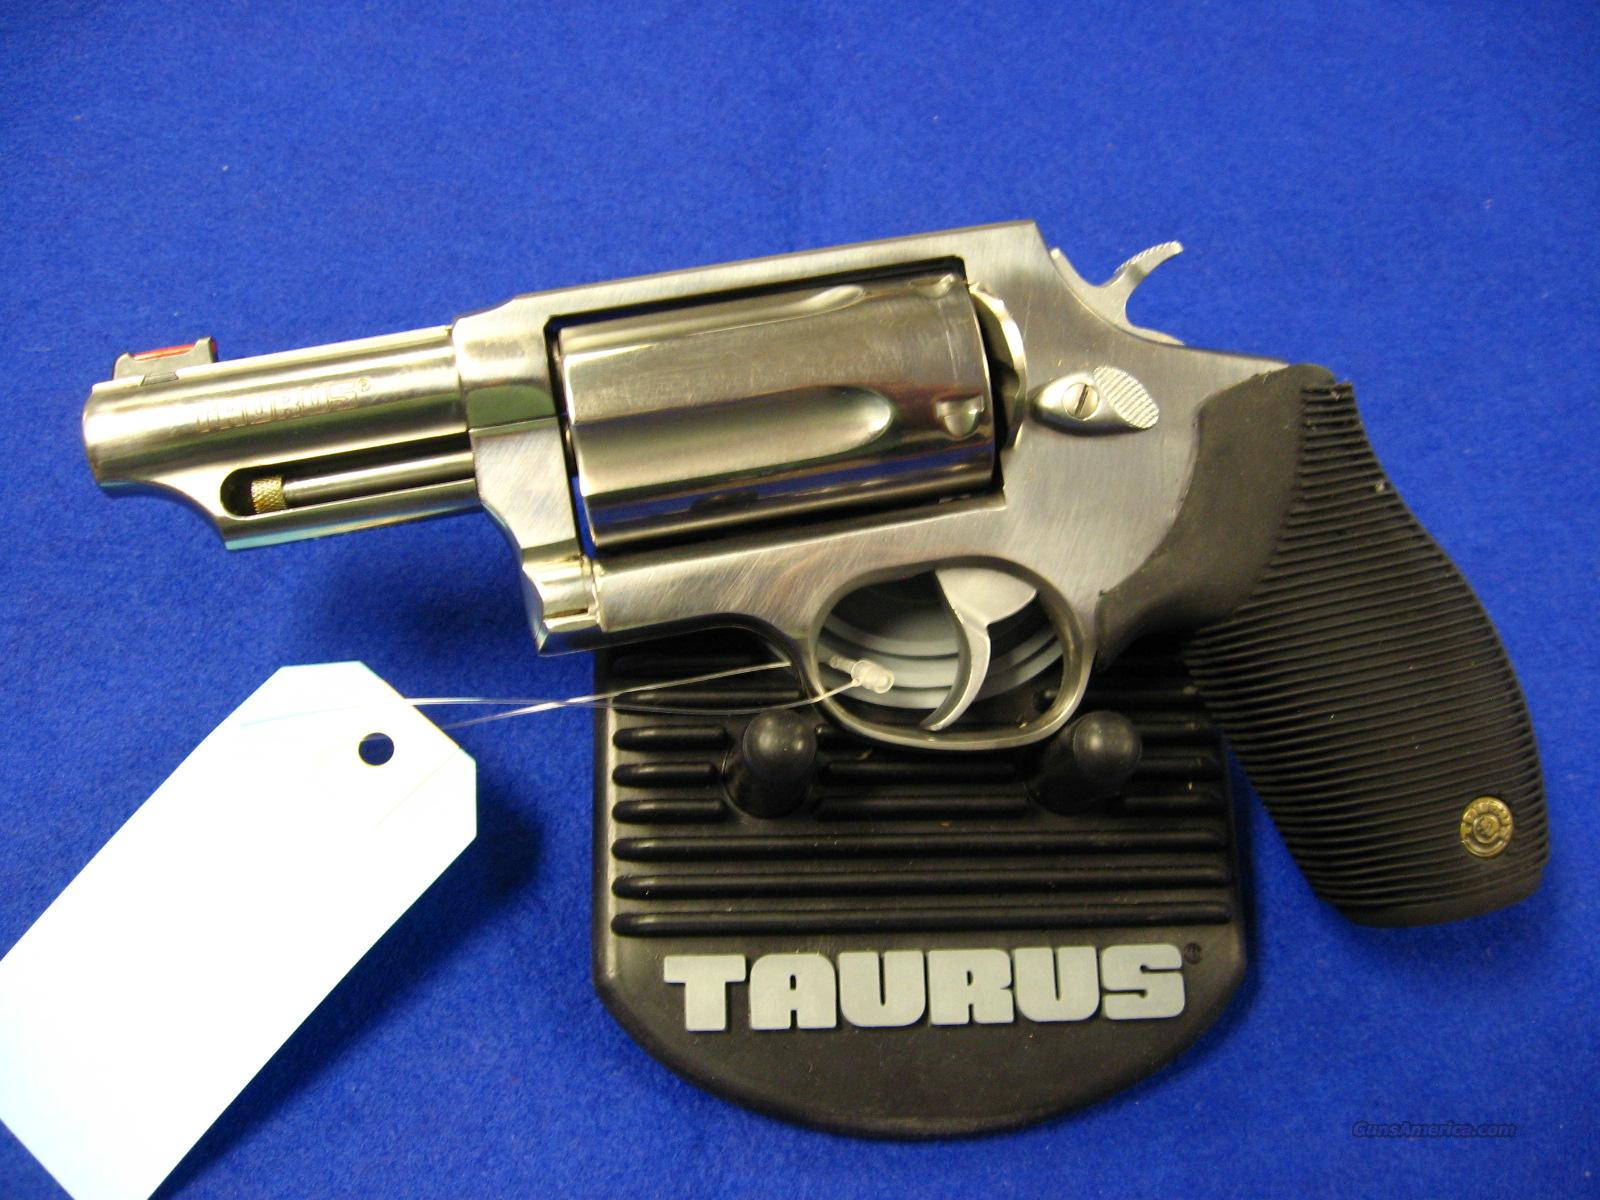 Taurus 'The Judge' Exclusive Edition  Guns > Pistols > Taurus Pistols/Revolvers > Revolvers